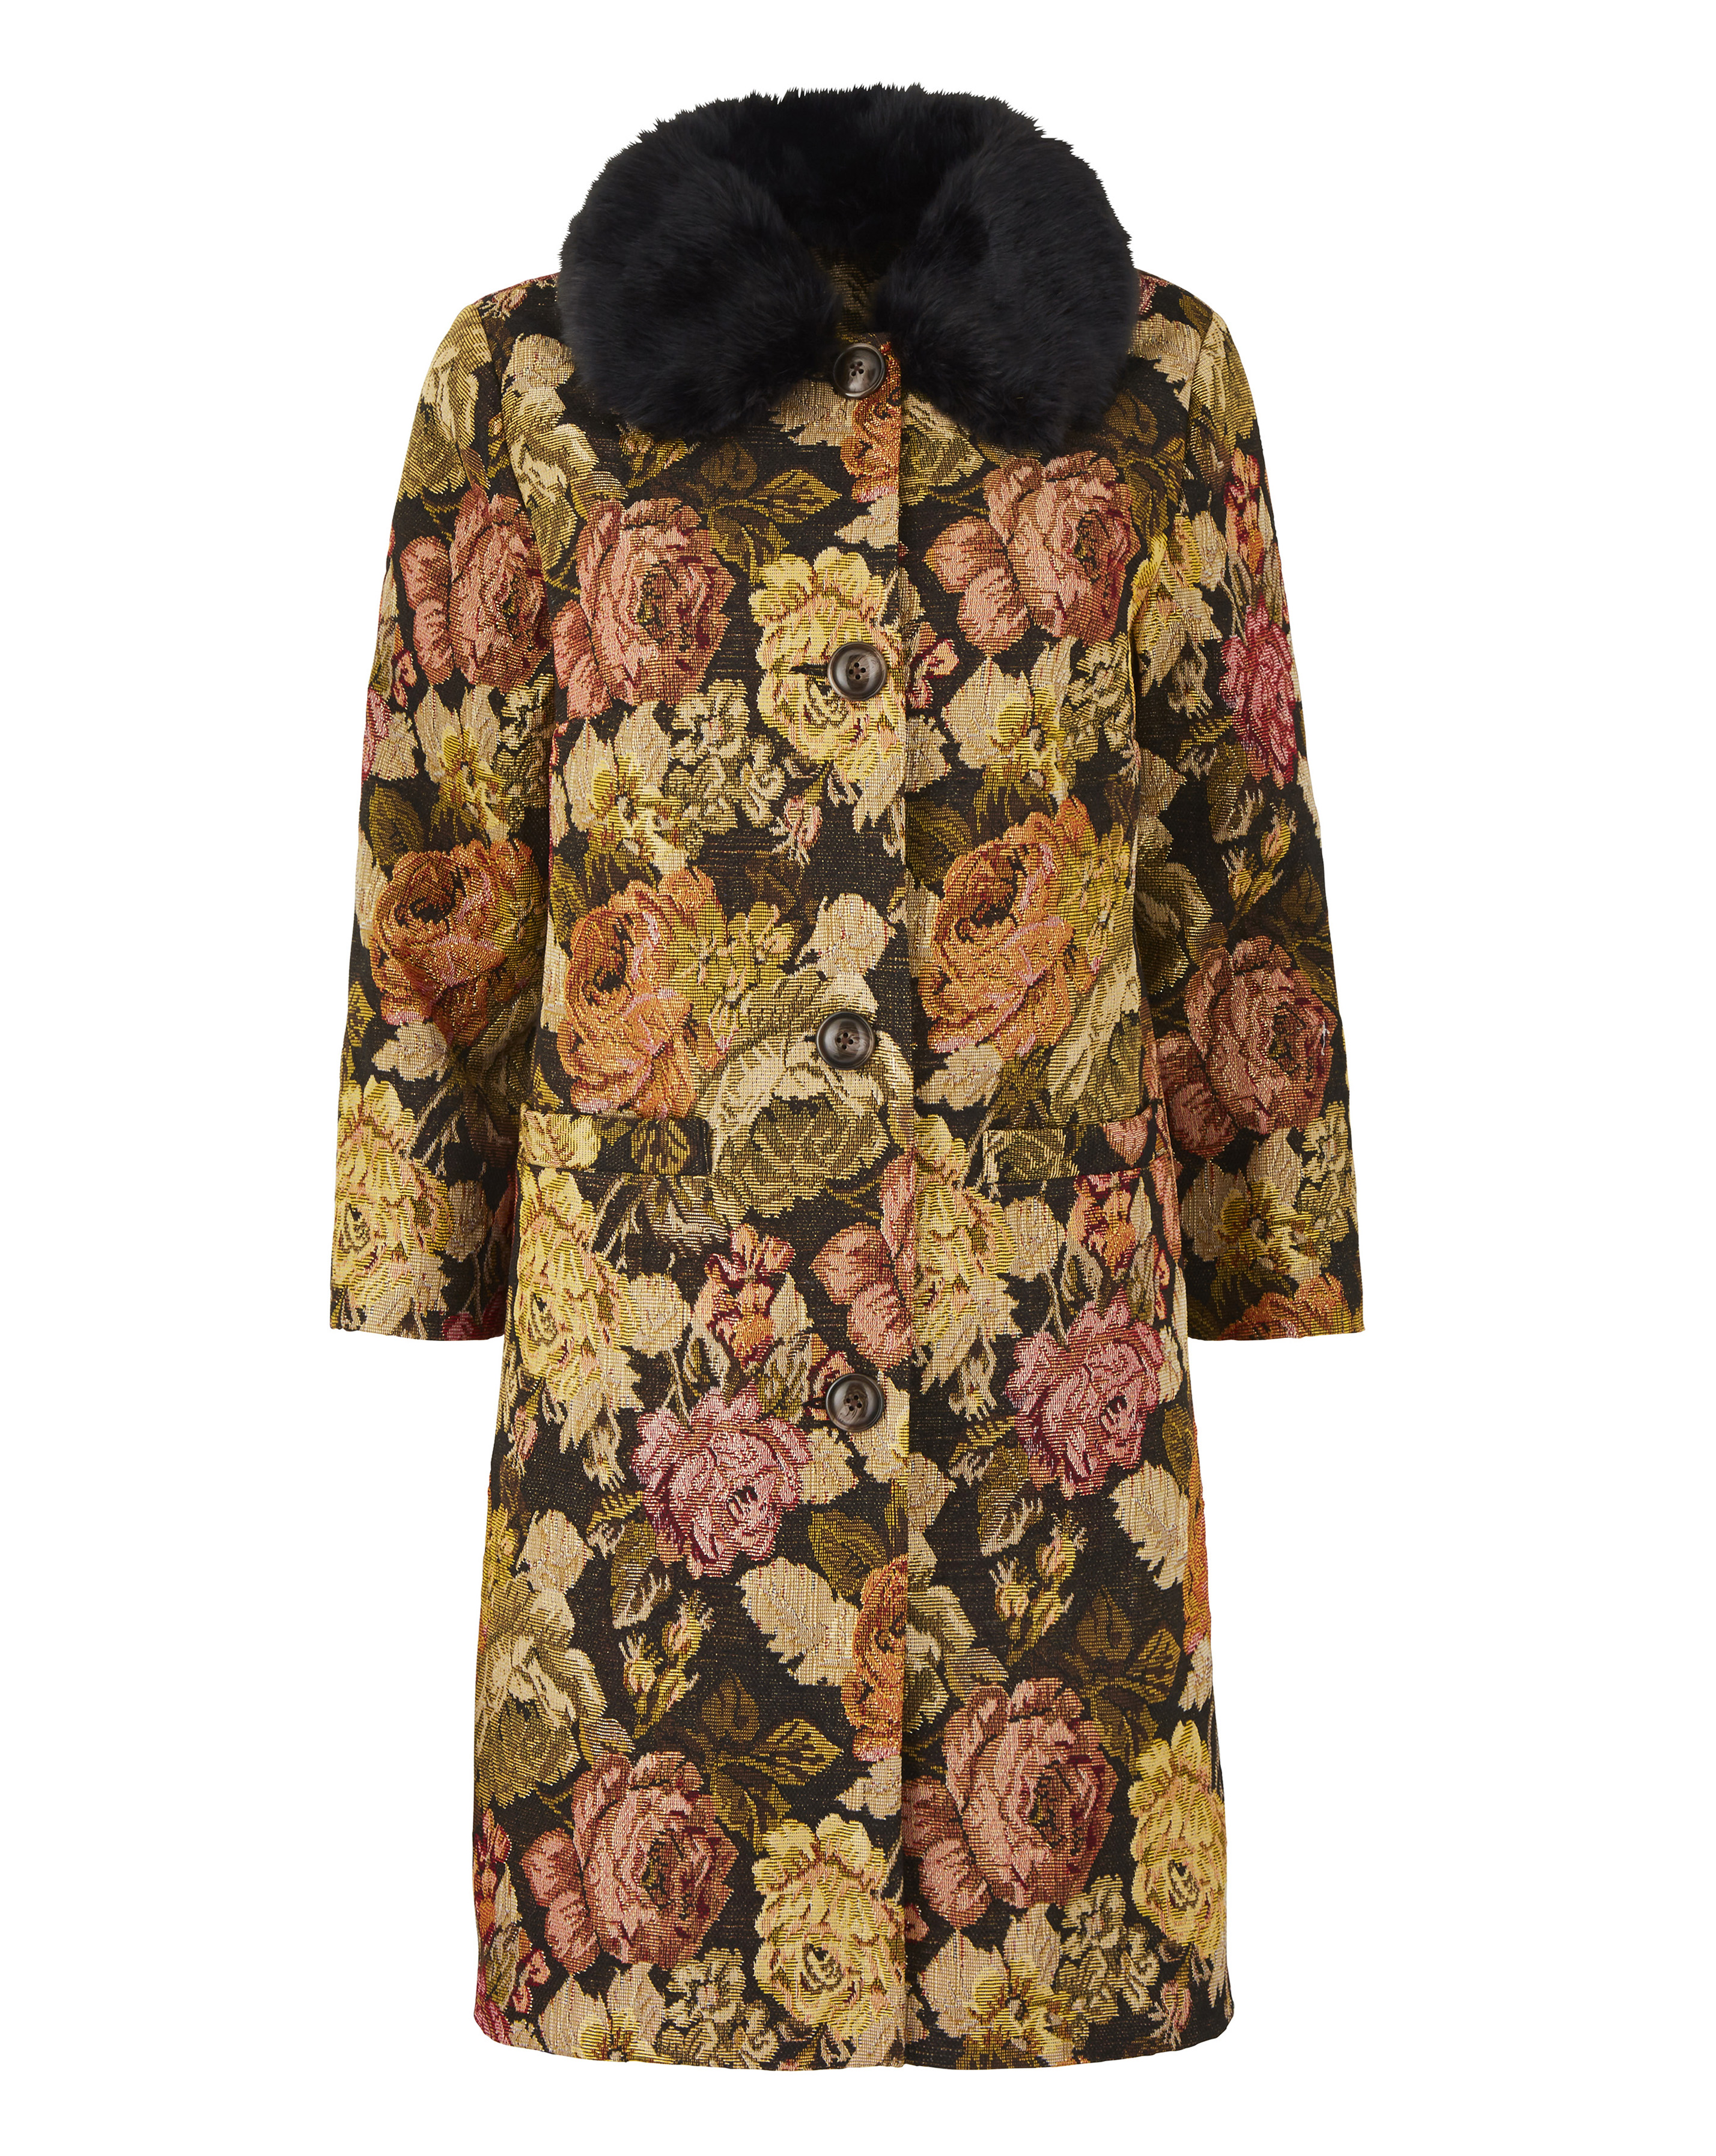 d293c23664eb Womens Tapestry Coat With Faux Fur Collar | eBay